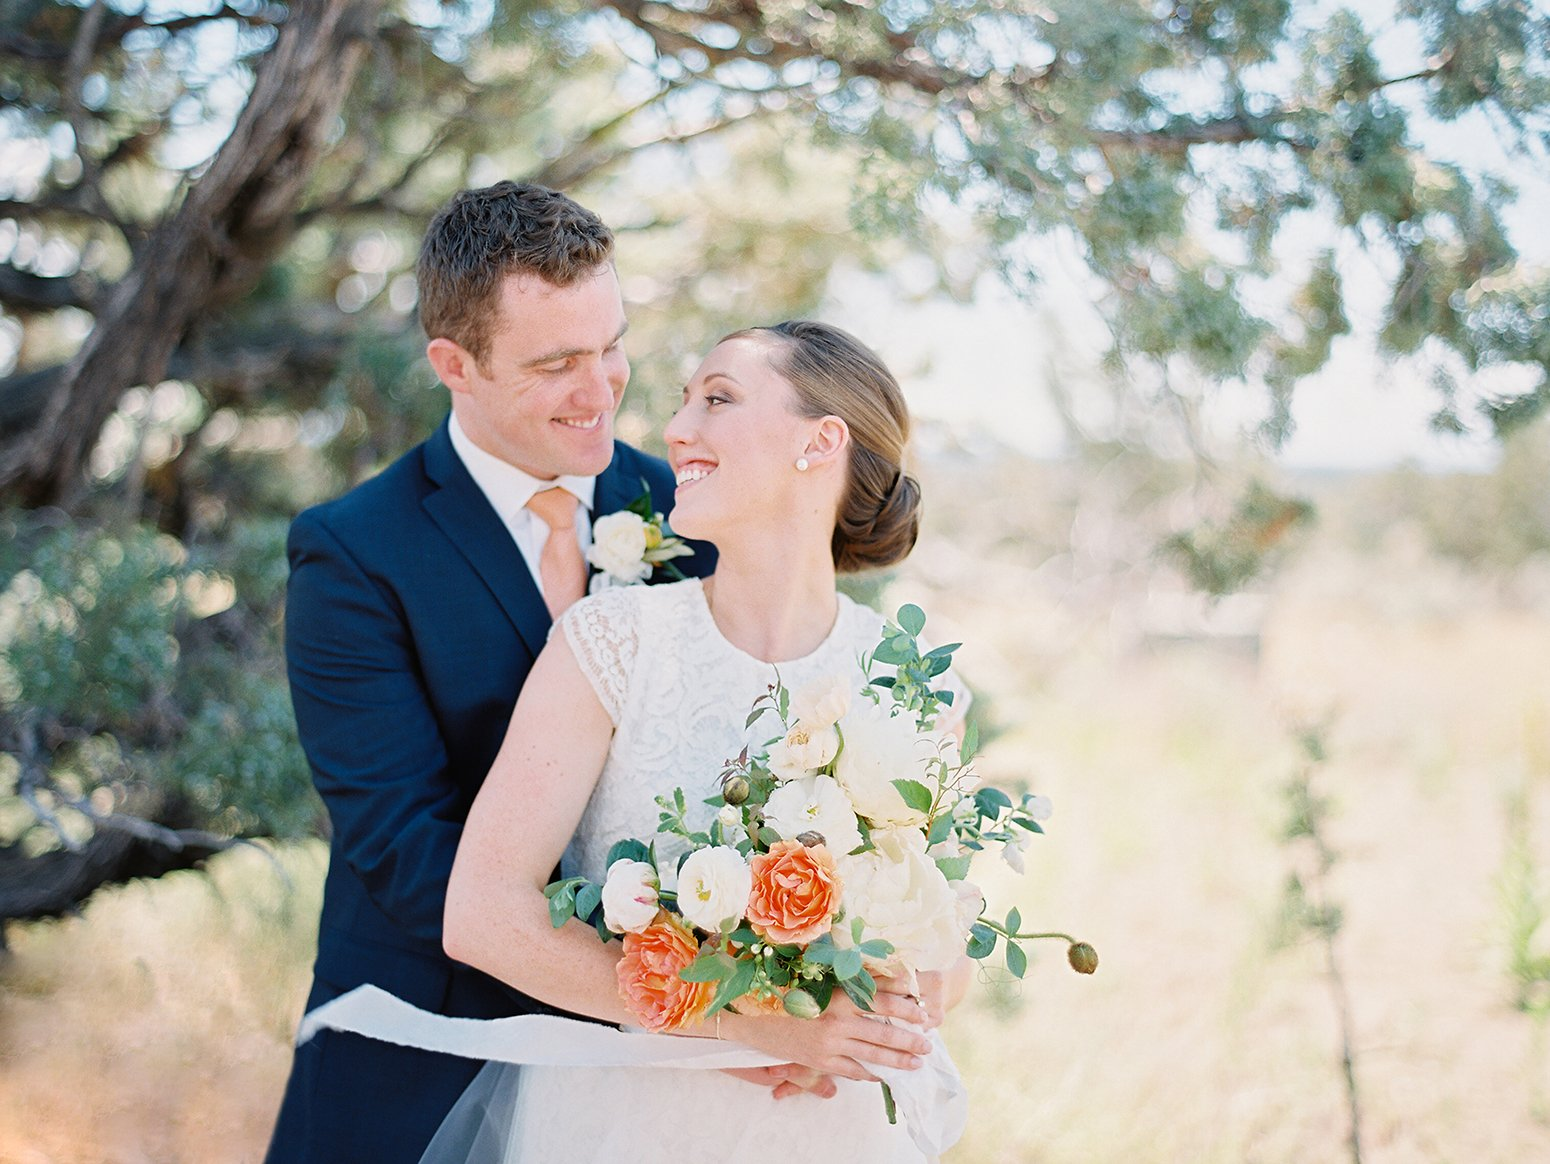 Brasada Ranch wedding photography by Marina Koslow.